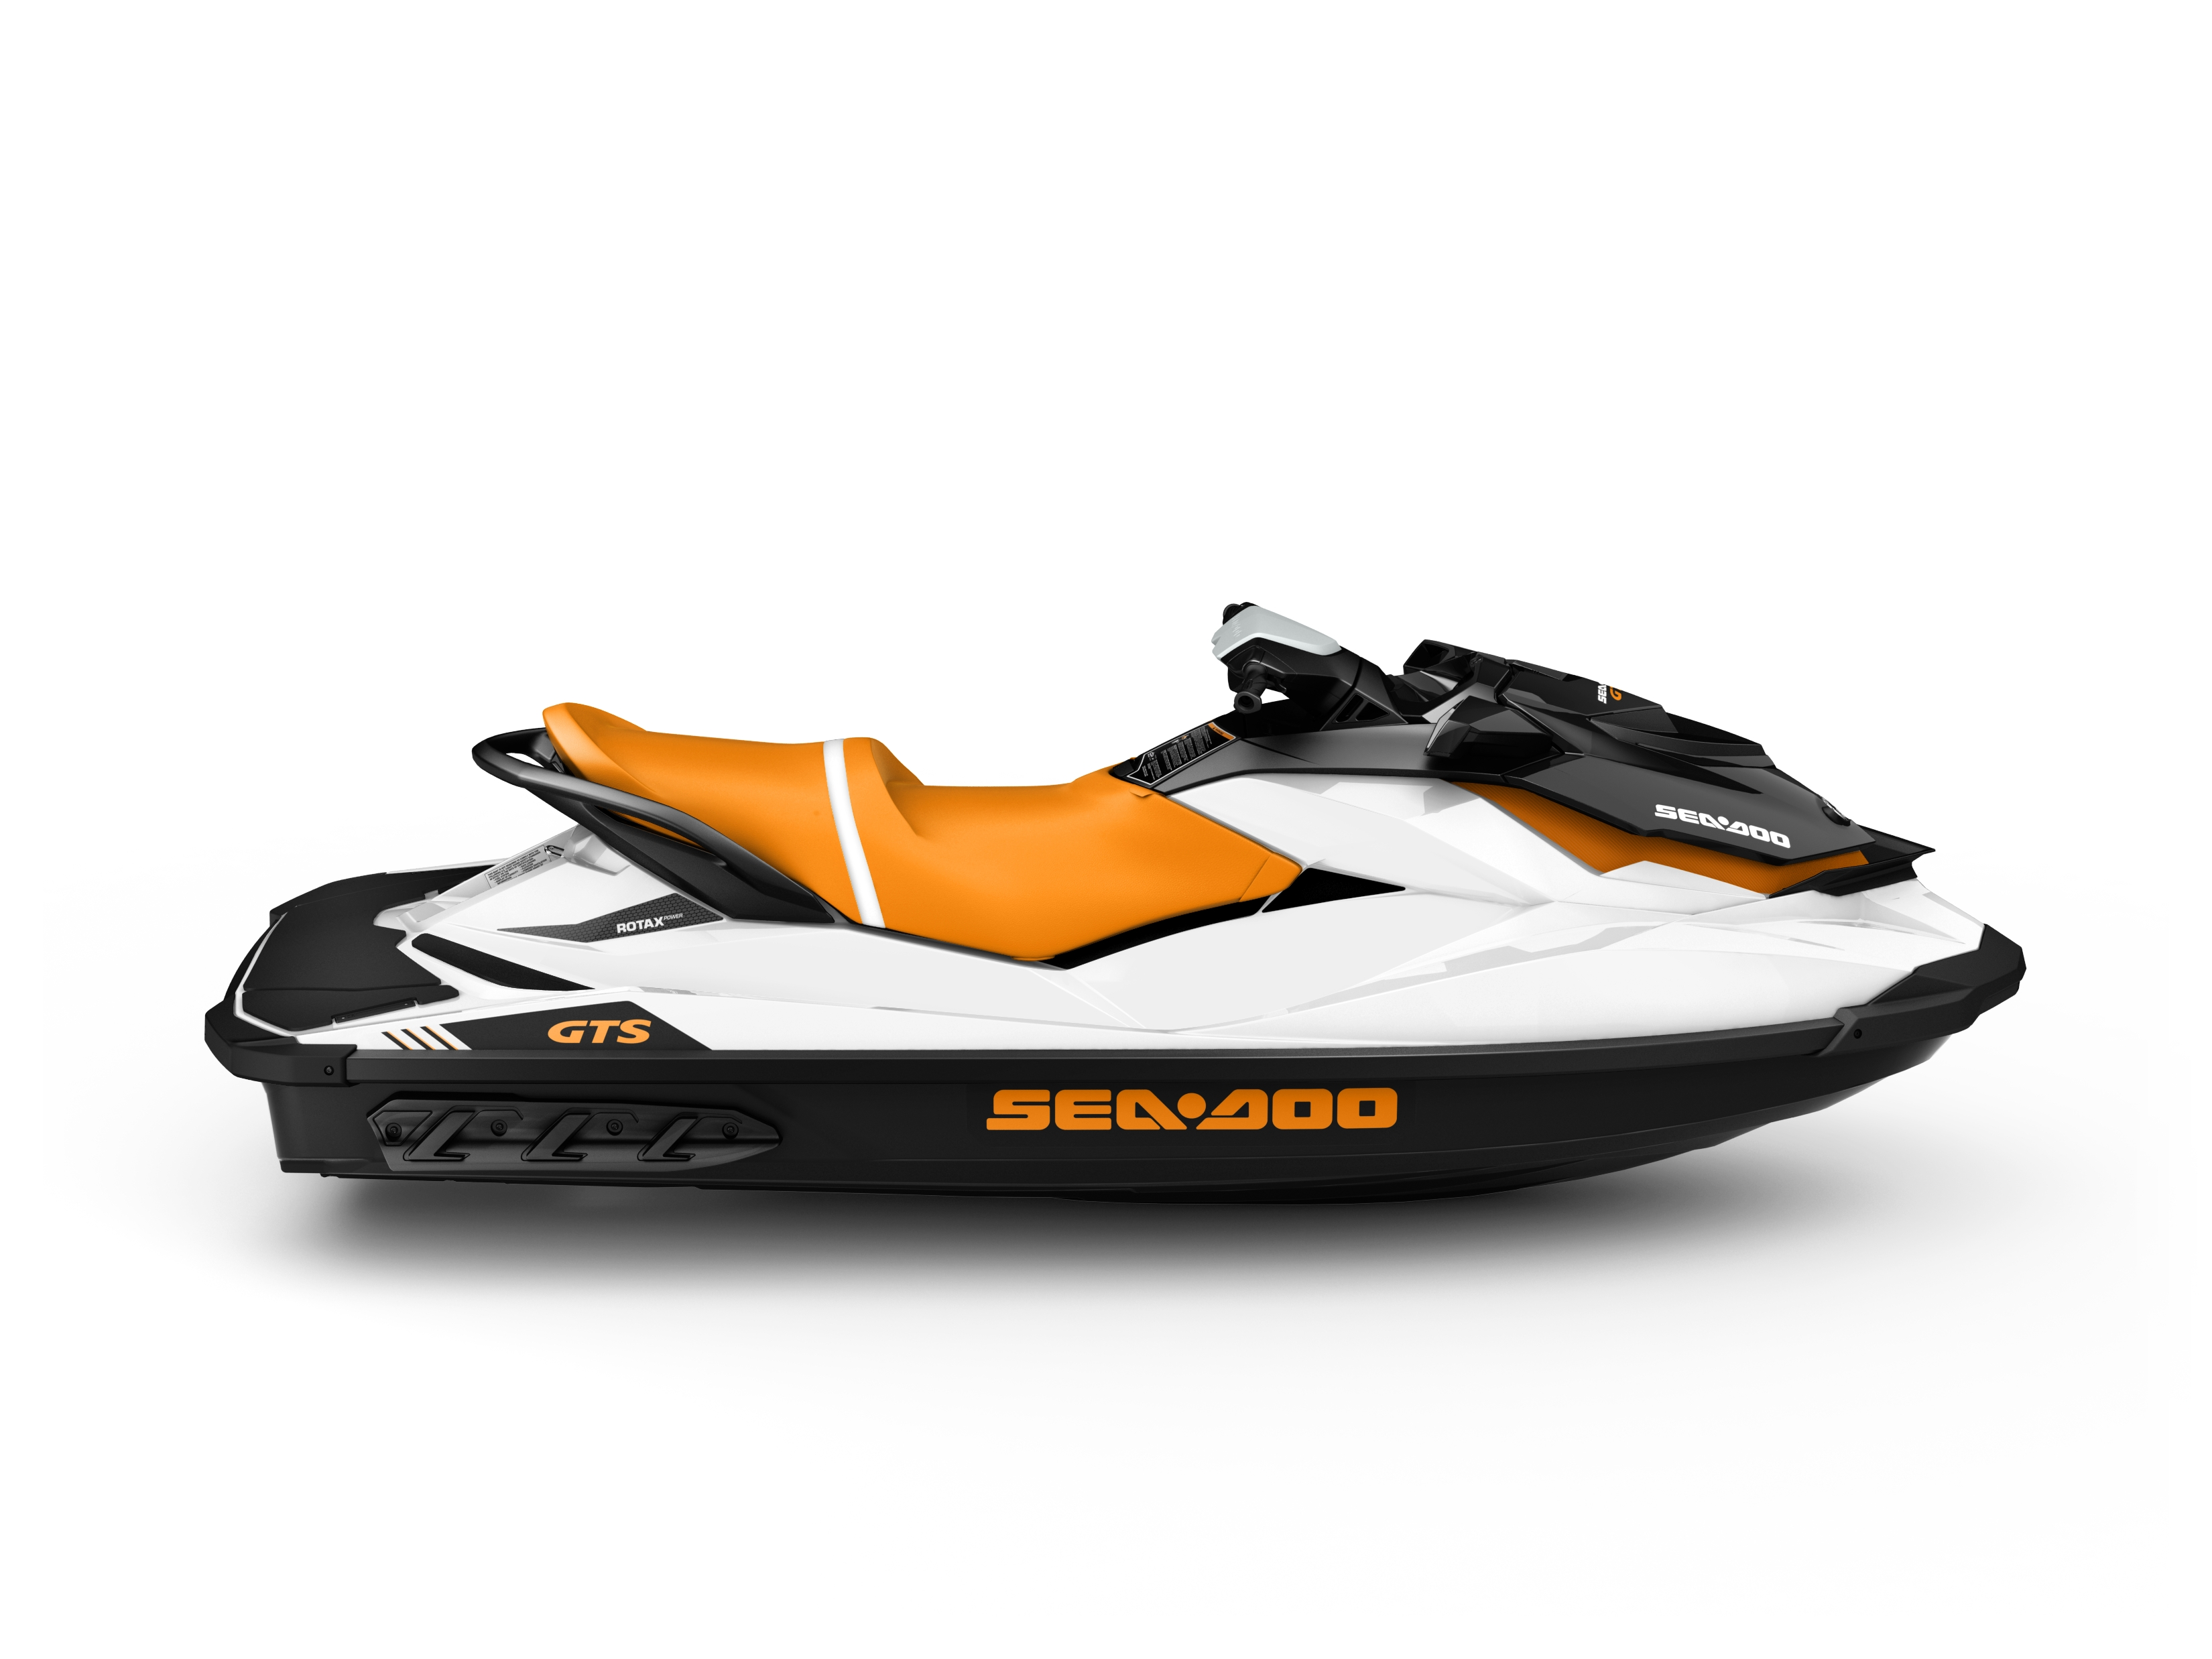 2017 Sea-Doo GTS Review - Top Speed. »